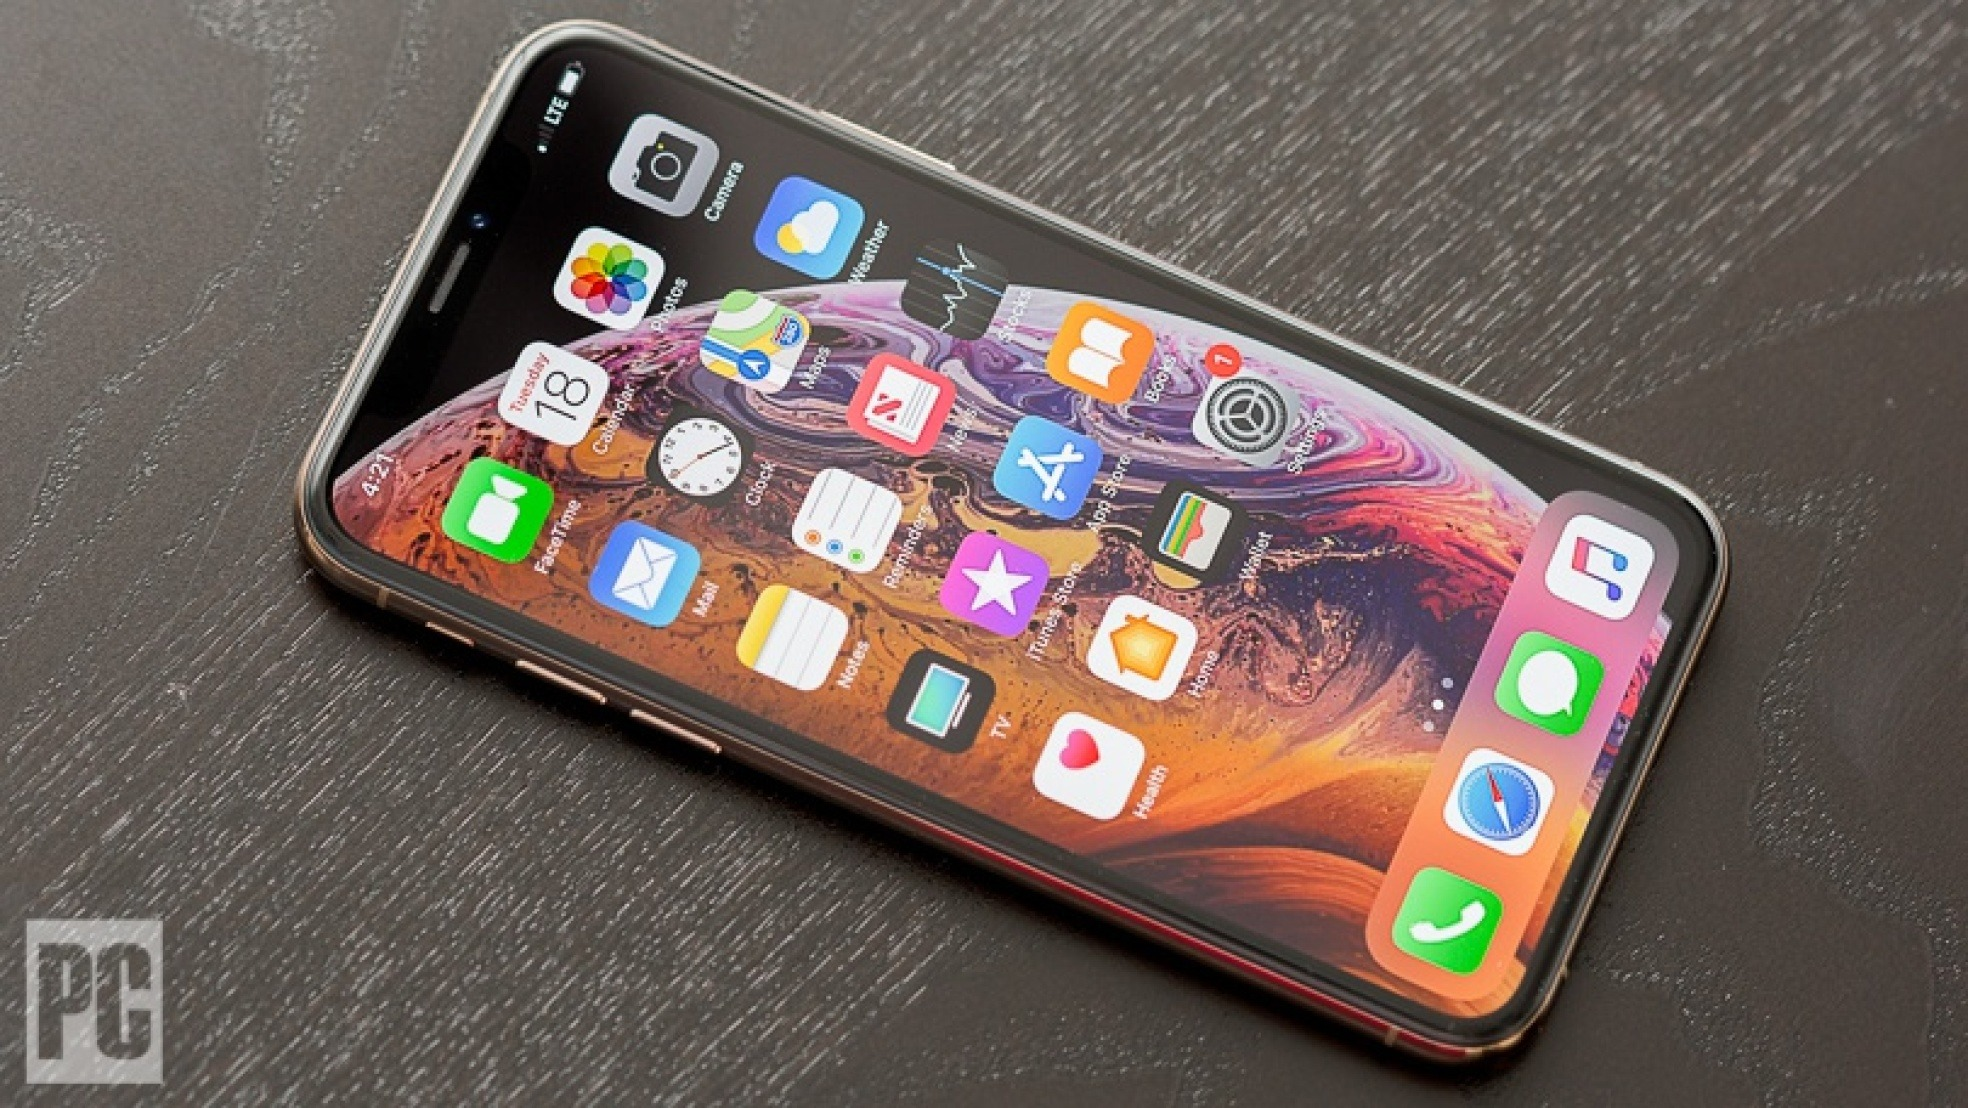 Apple iPhone XS , Apple iPhone XS Cam ,Apple iPhone XS Camera test,Apple iPhone XS Screen Repair, Apple iPhone XS Camera, Apple iPhone XS Unboxing, Apple iPhone XS Hands-on